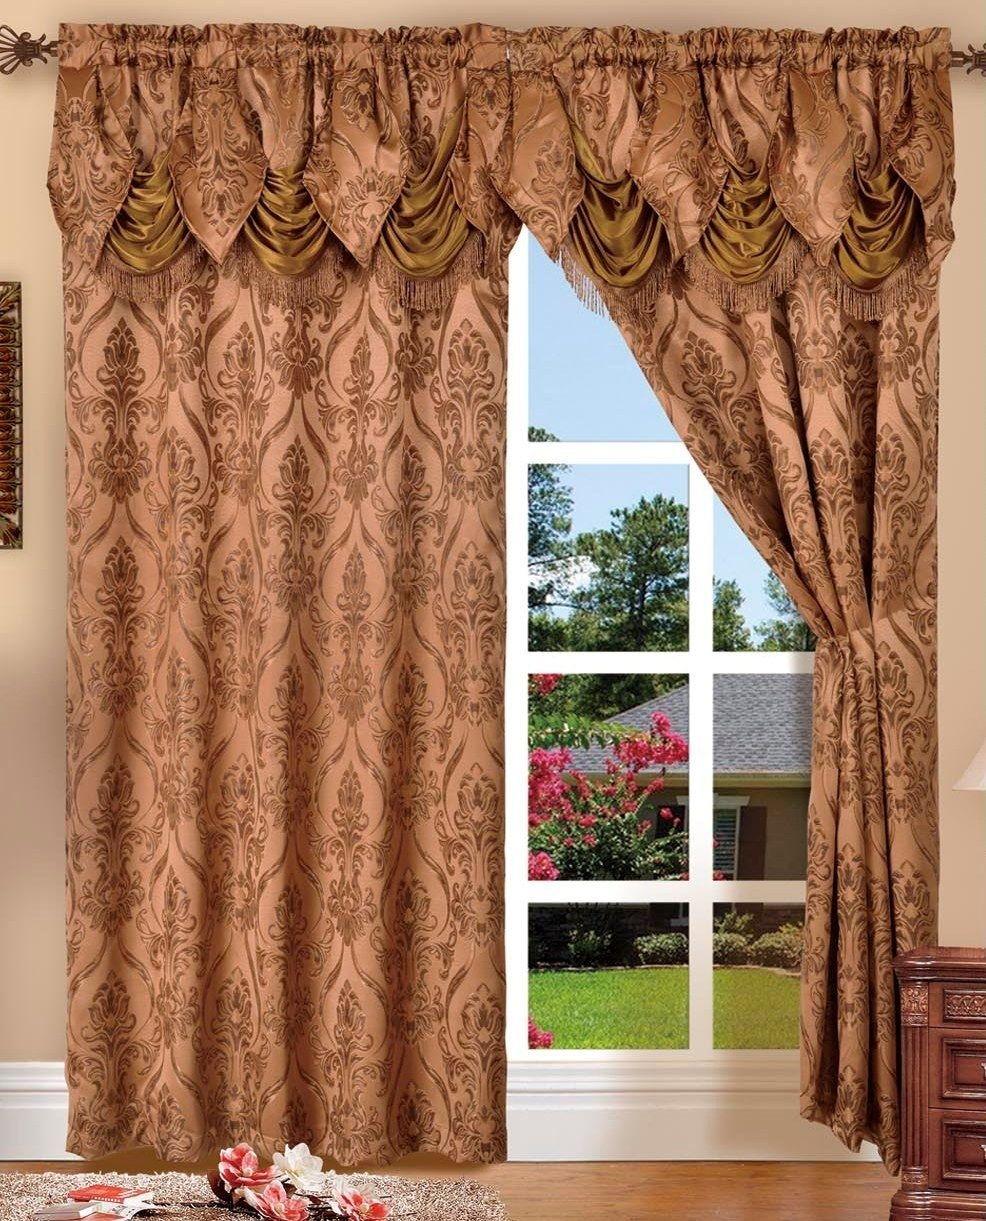 Elegant Comfort Penelopie Jacquard Look Curtain Panel Set, 54 by 84-Inch, Brown, Set of 2